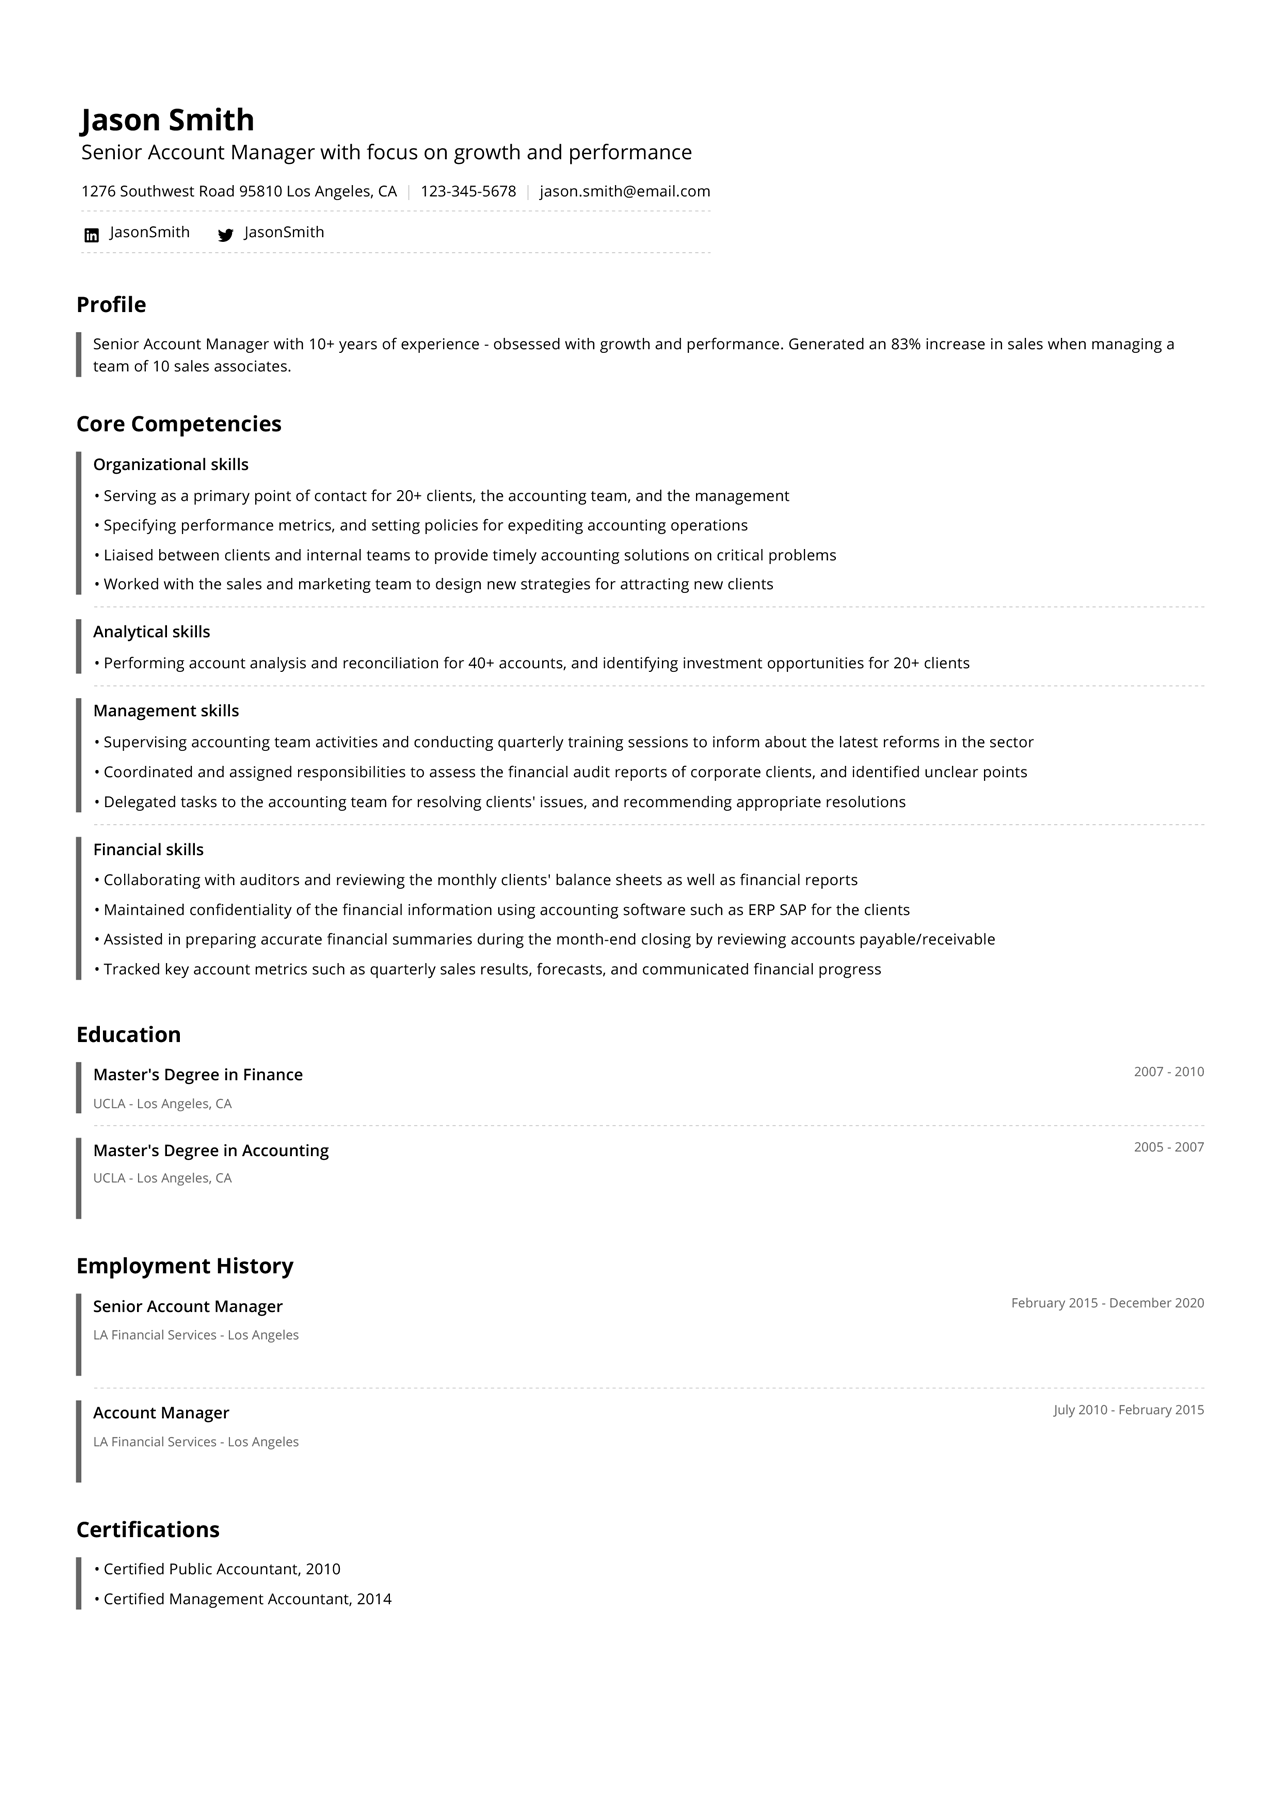 Image of a functional resume example from a senior account manager